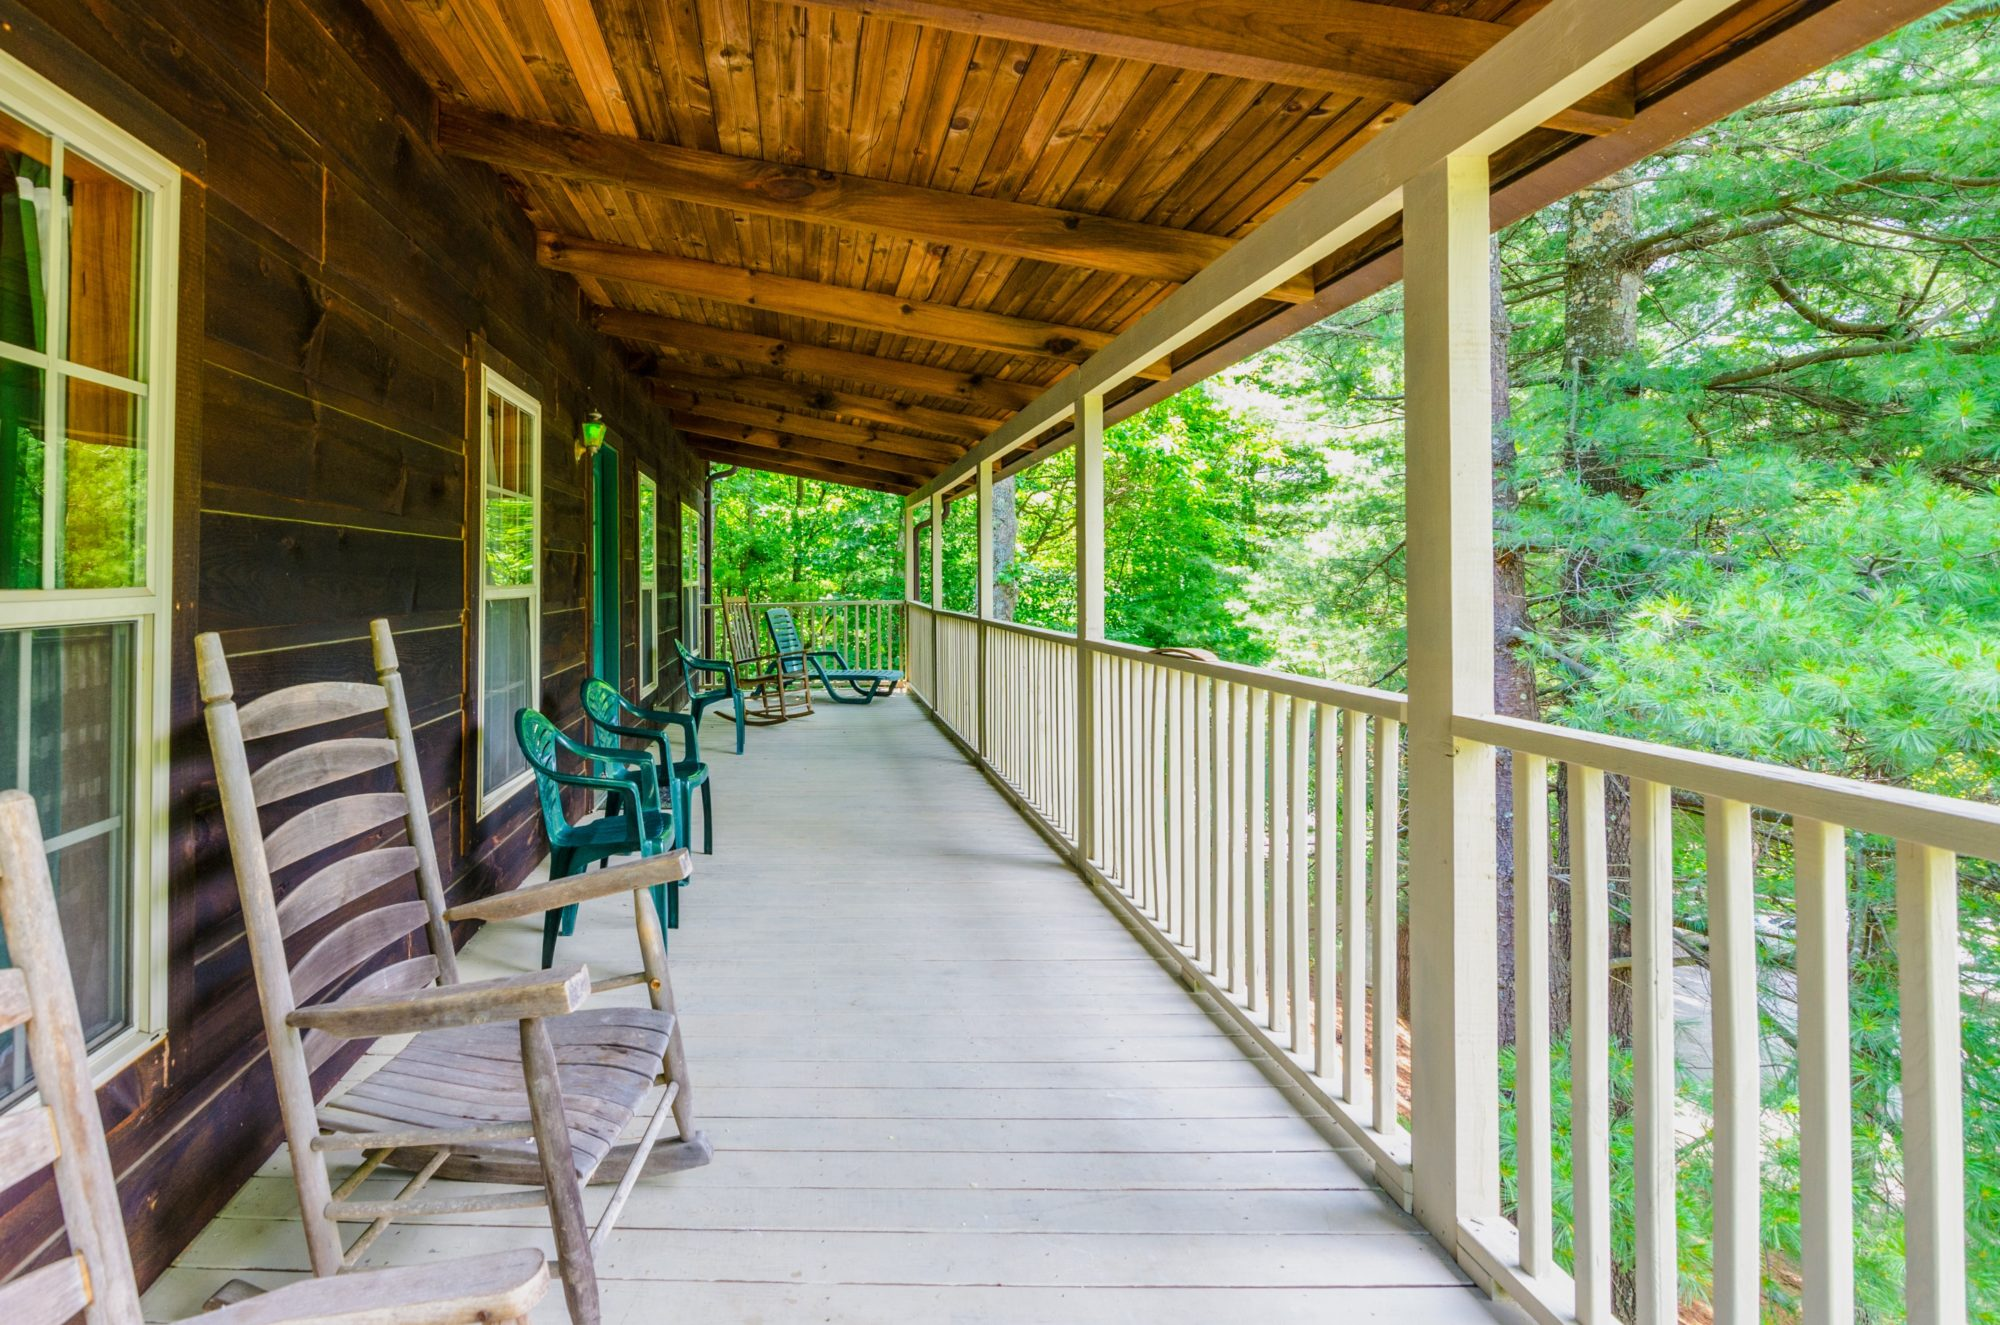 Wooden porch with wooden fencing, rocking chairs and patio furniture